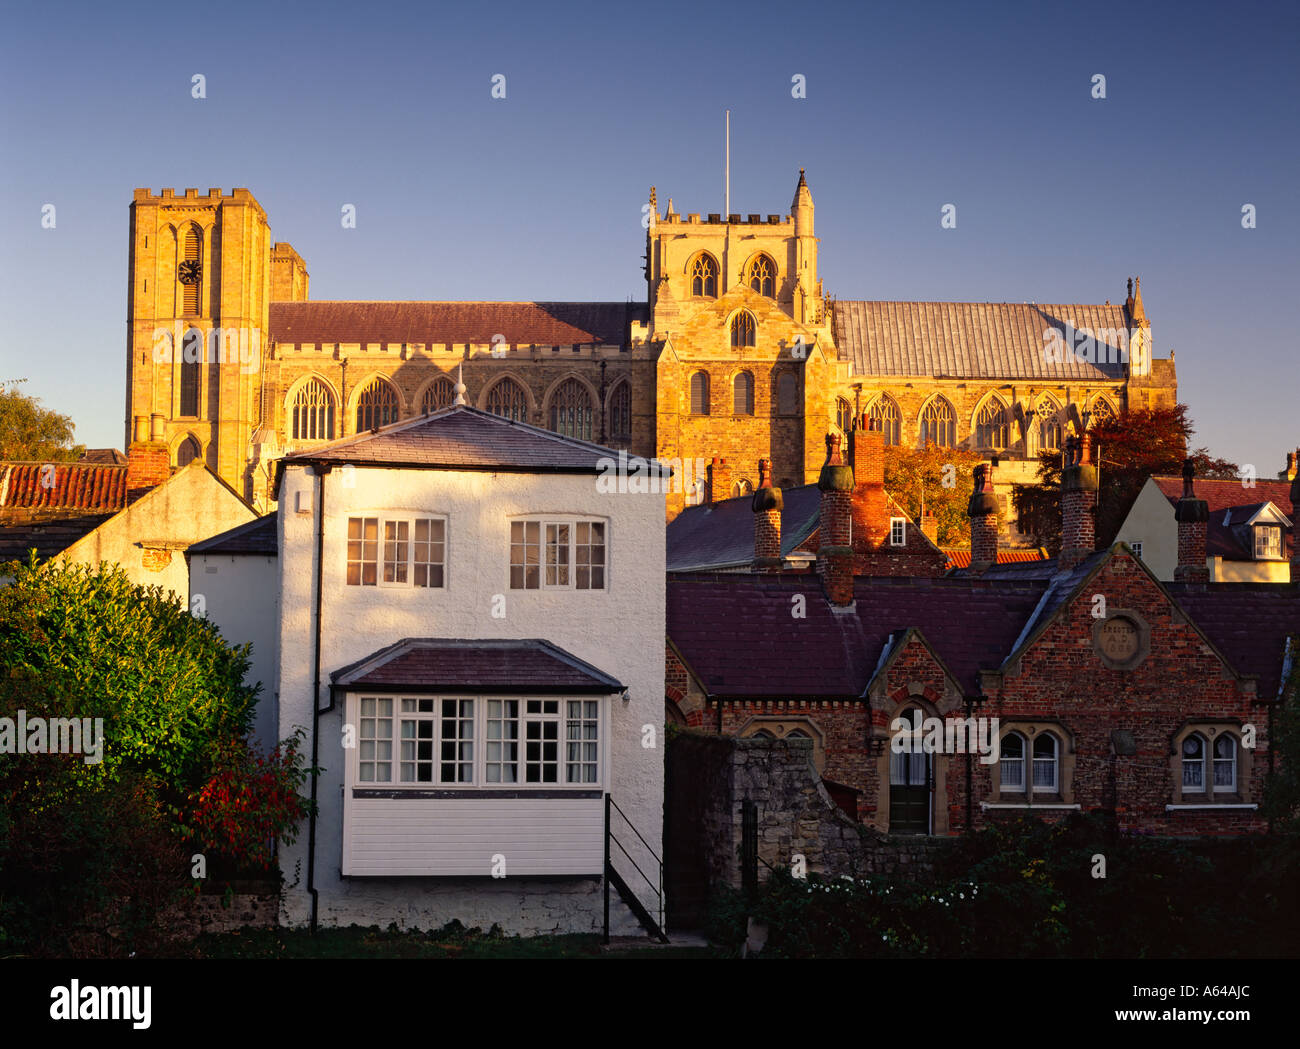 Ripon Cathedral in North Yorkshire - Stock Image